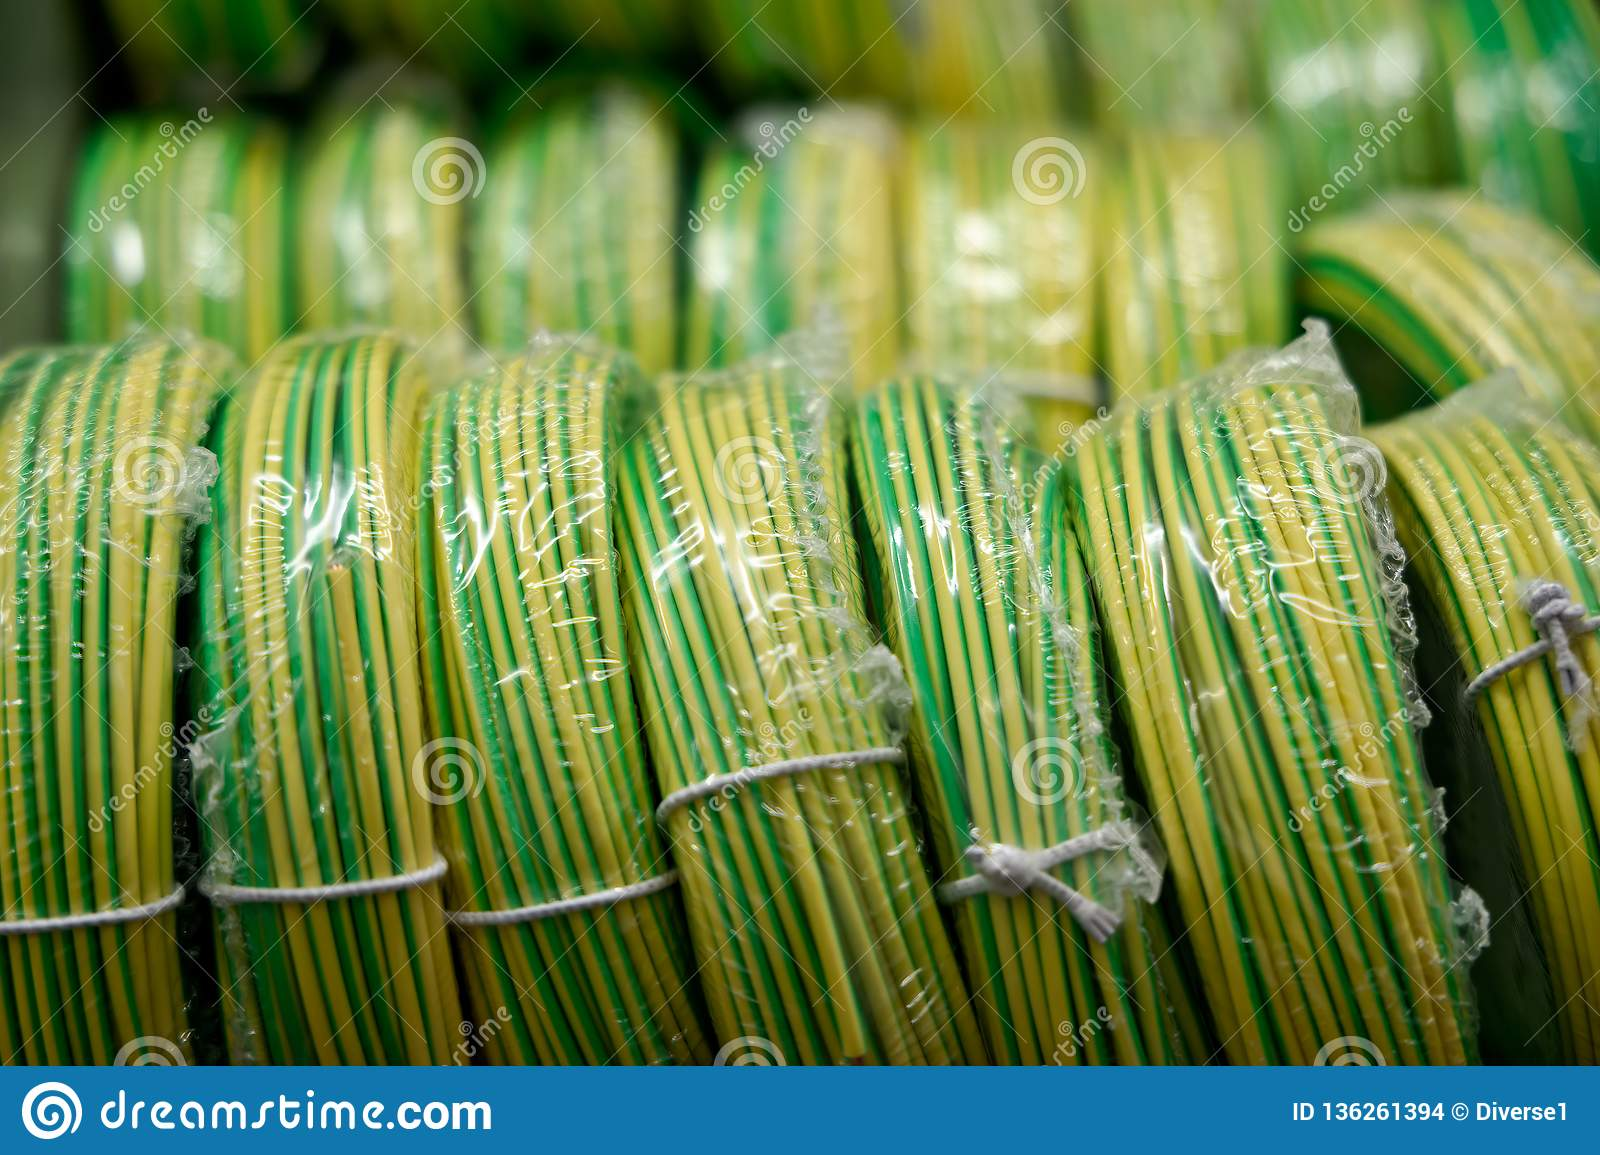 Electric Wires For Wiring Cabling Stock Photo - Image of ... on